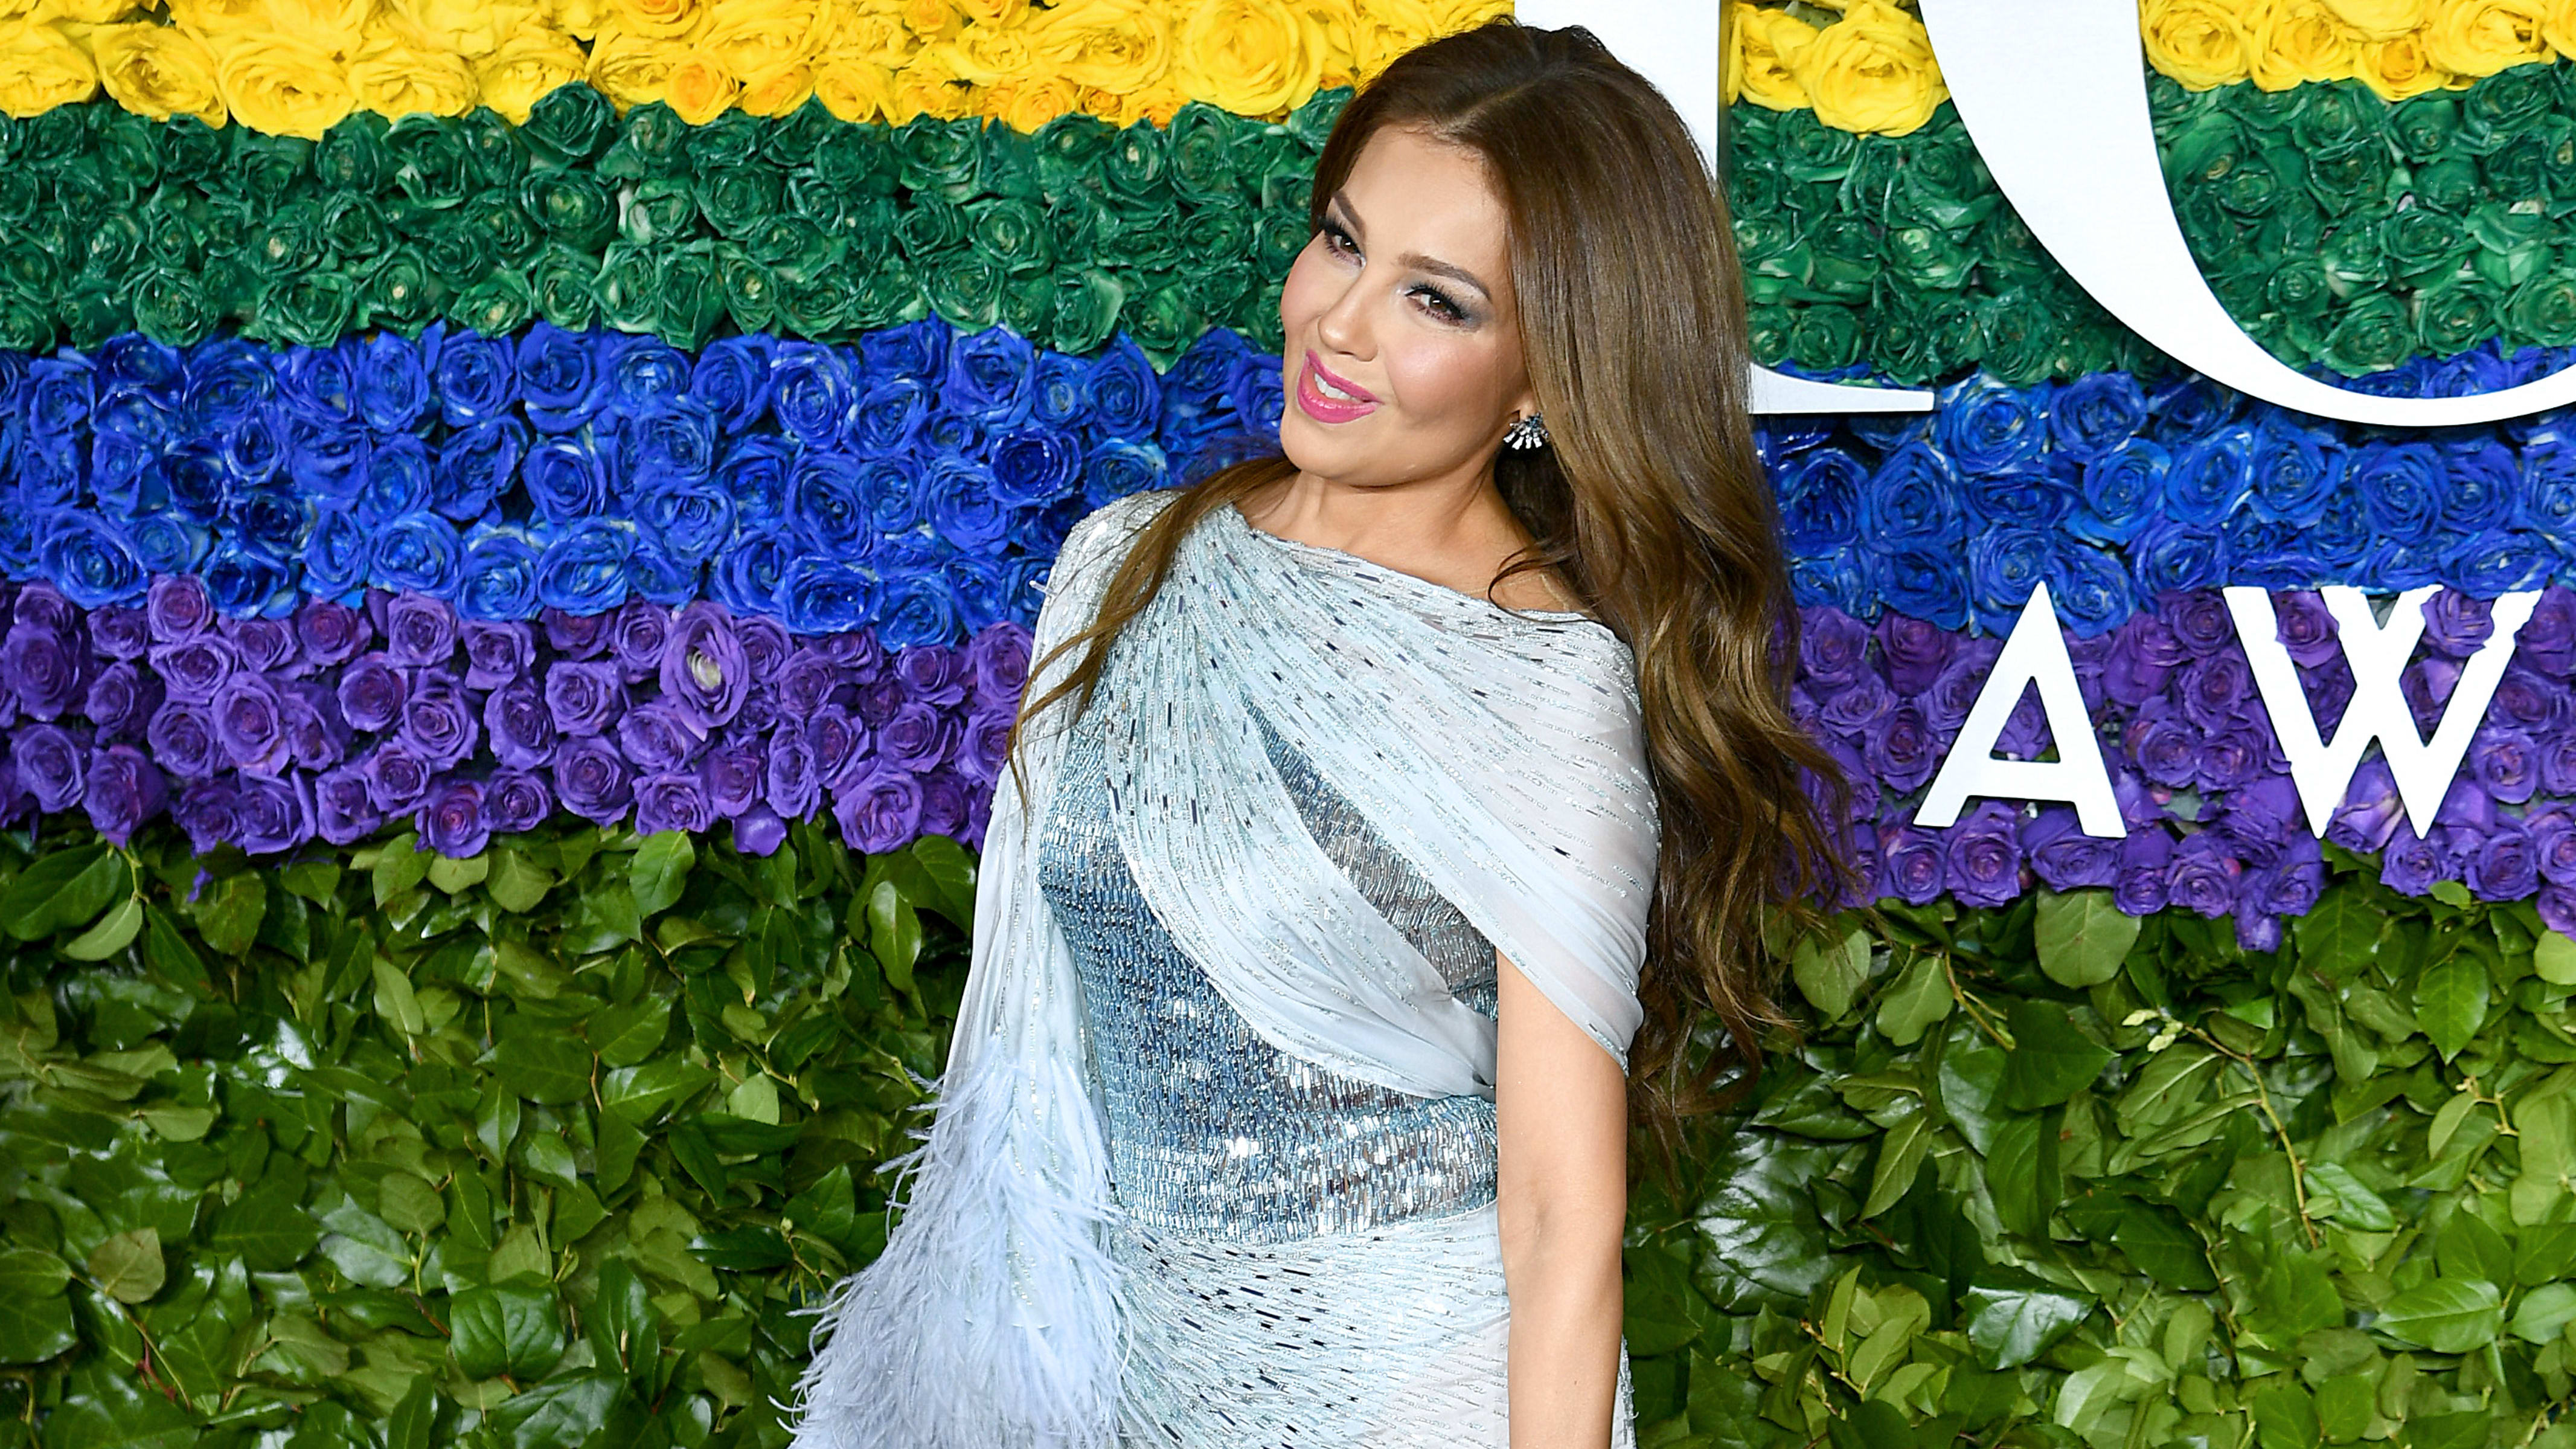 NEW YORK, NEW YORK - JUNE 09: Thalía attends the 73rd Annual Tony Awards at Radio City Music Hall on June 09, 2019 in New York City. (Photo by Dimitrios Kambouris/Getty Images for Tony Awards Productions)